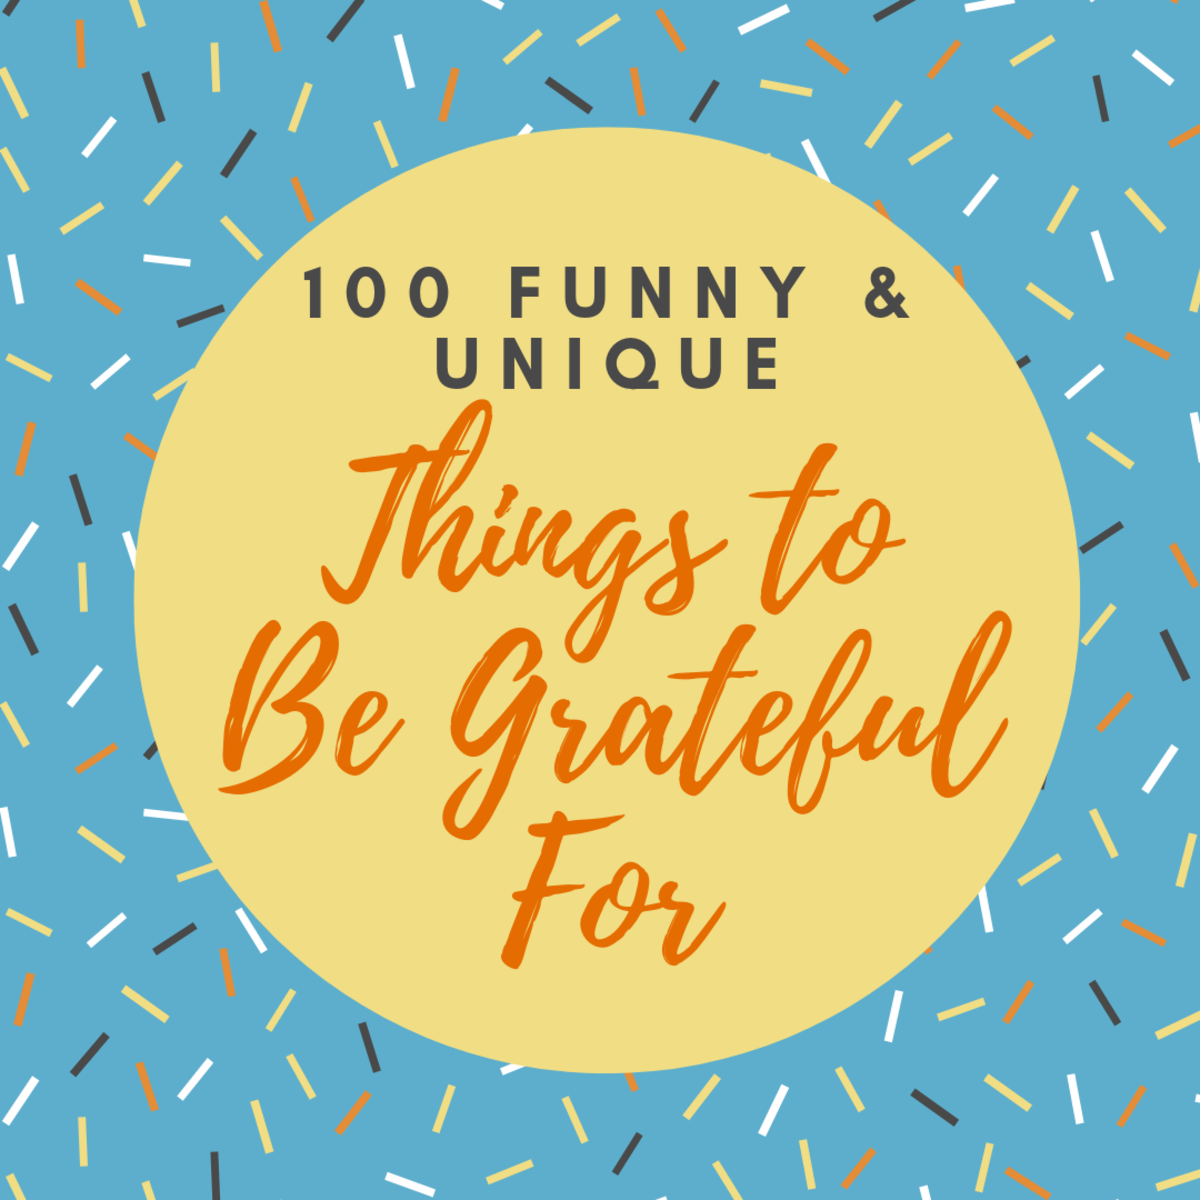 What are the unusual little things you're thankful for?